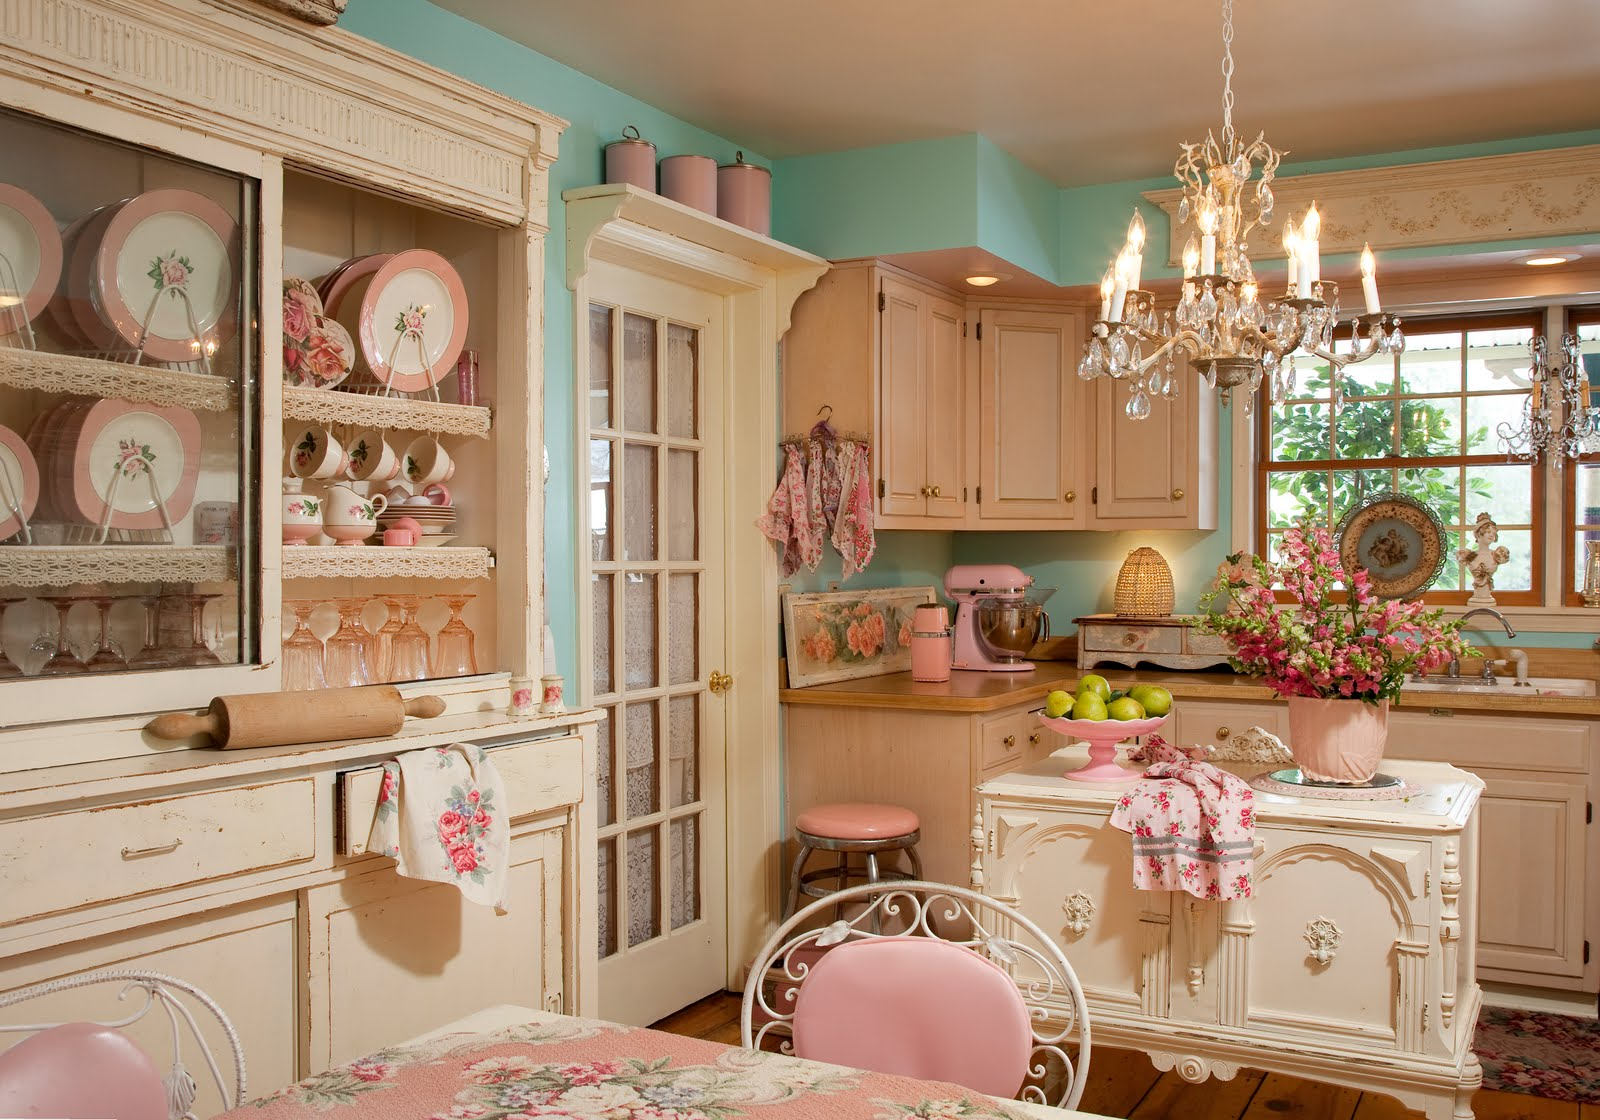 Kitchen-Decor-Chandelier-Shabby-Chic-Ideas.